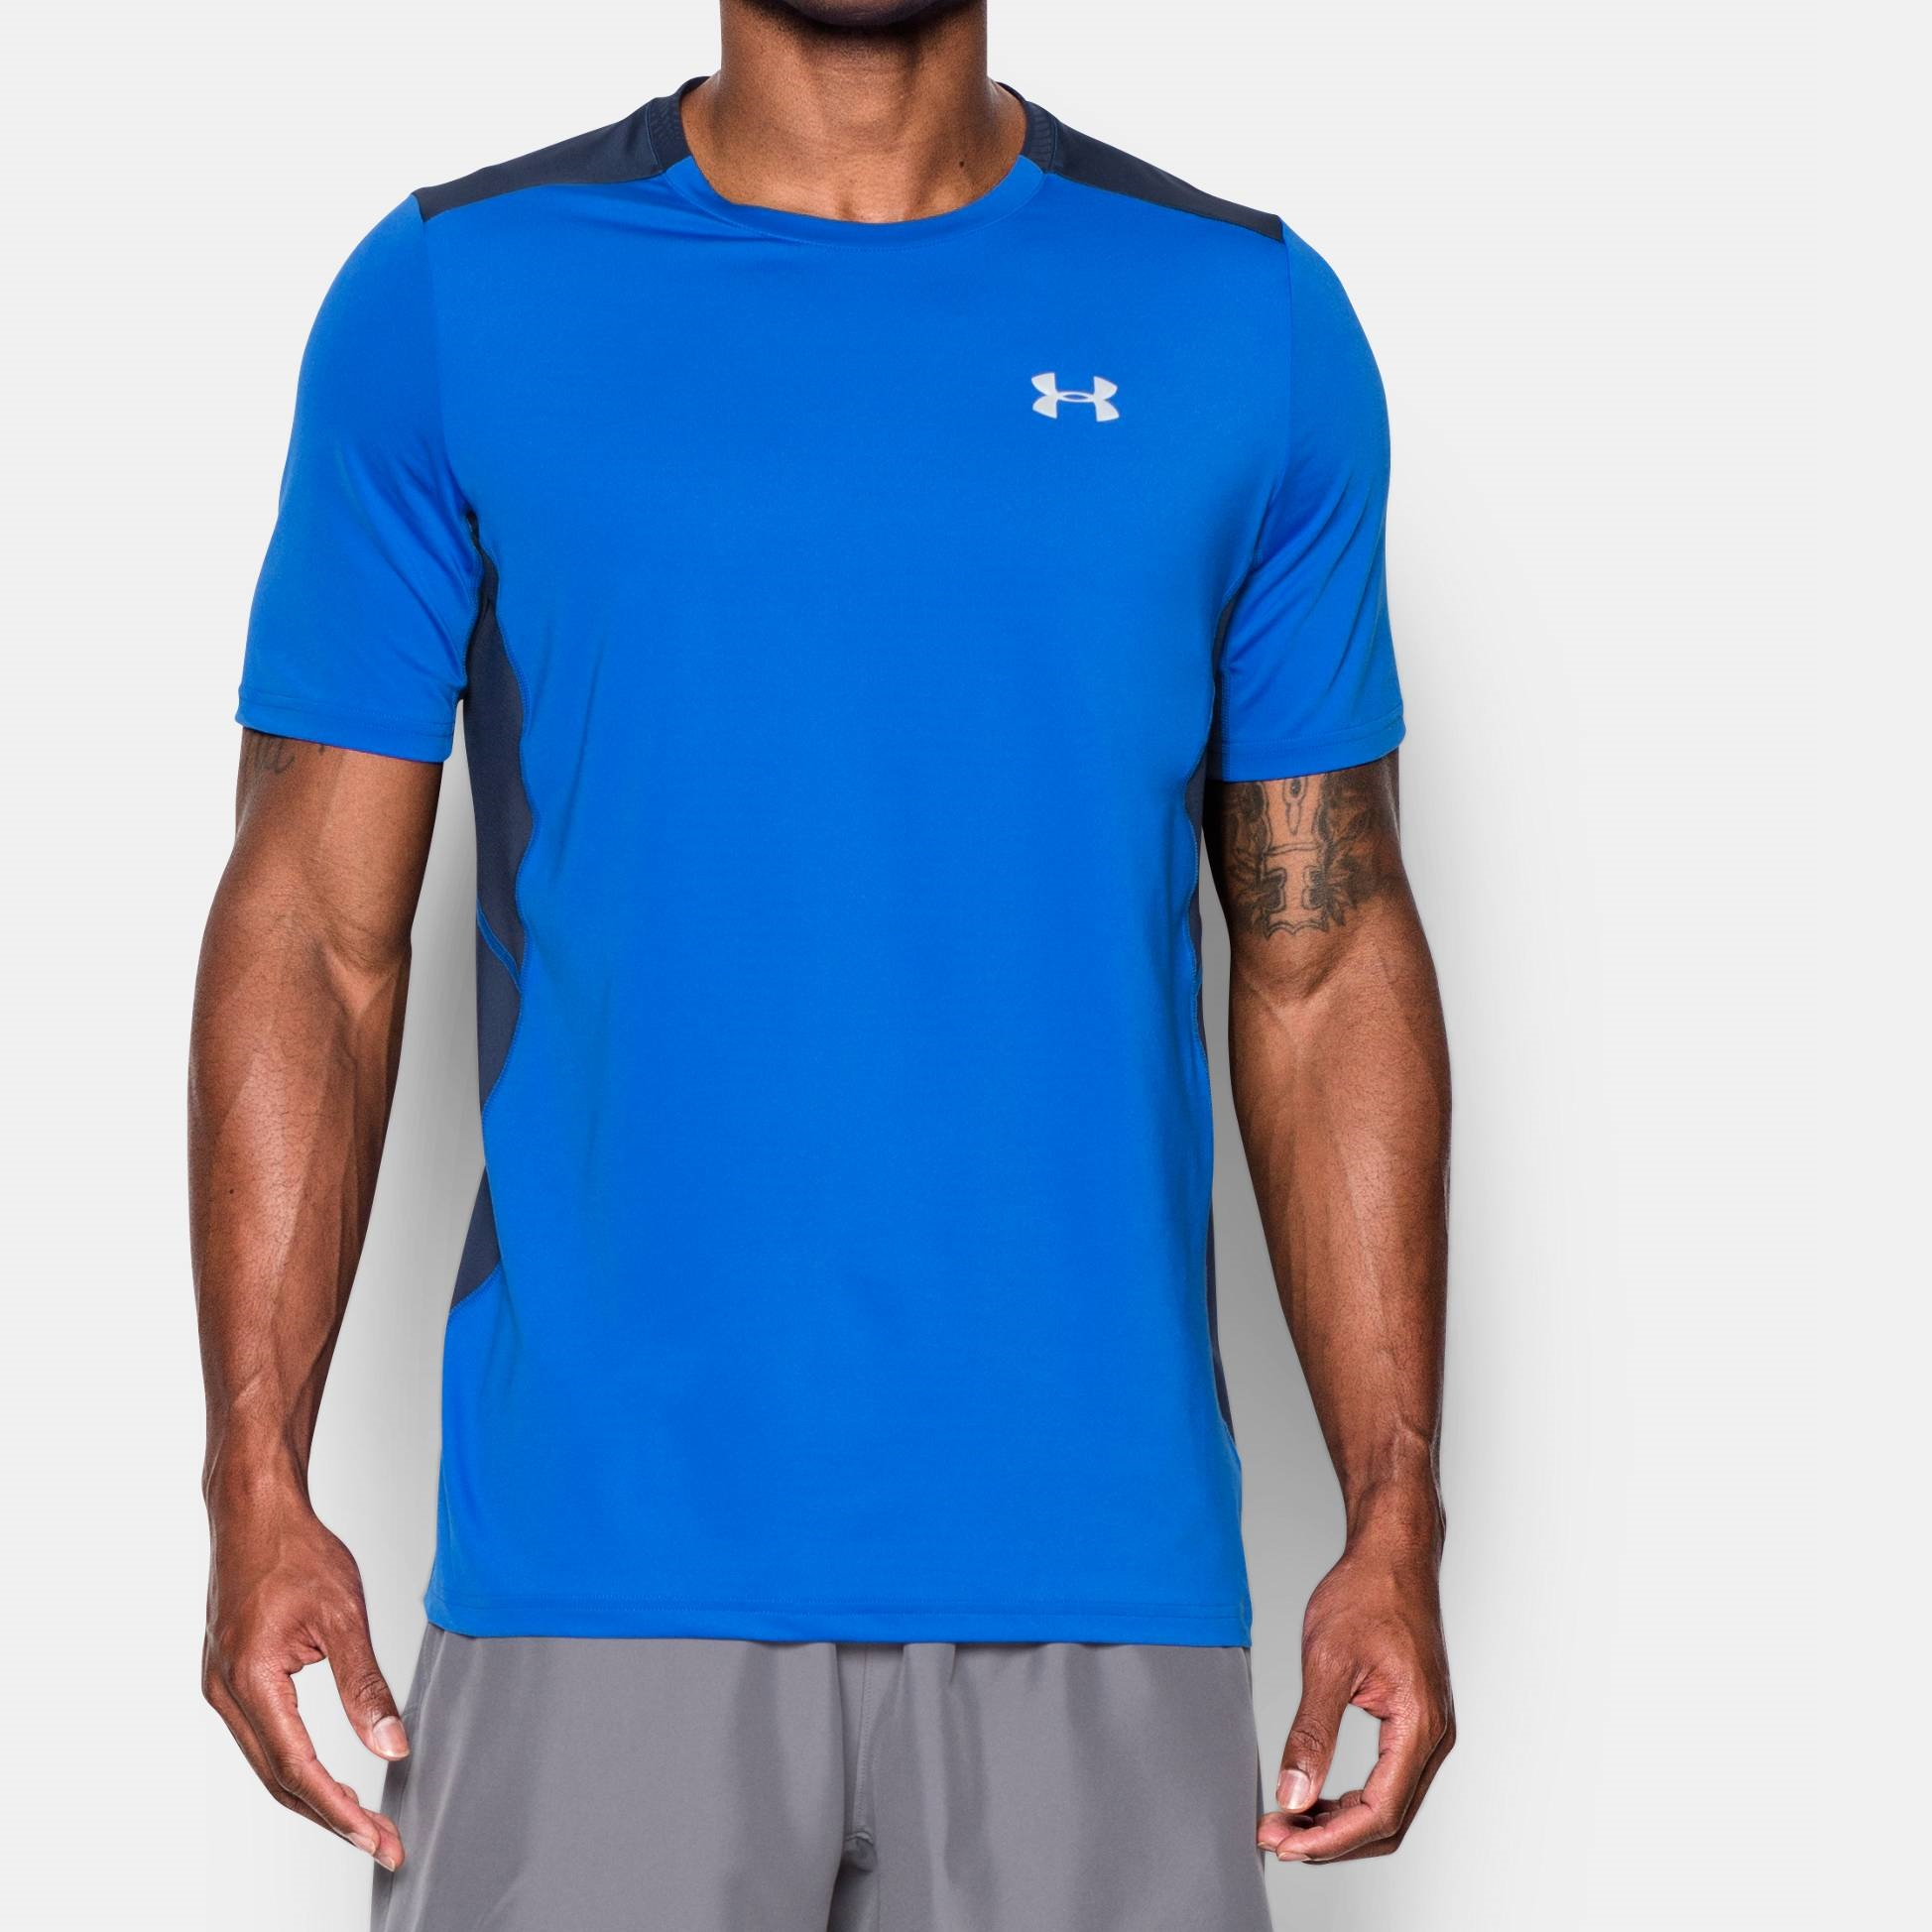 Clothing Under Armour Coolswitch Running Shirt Fitness